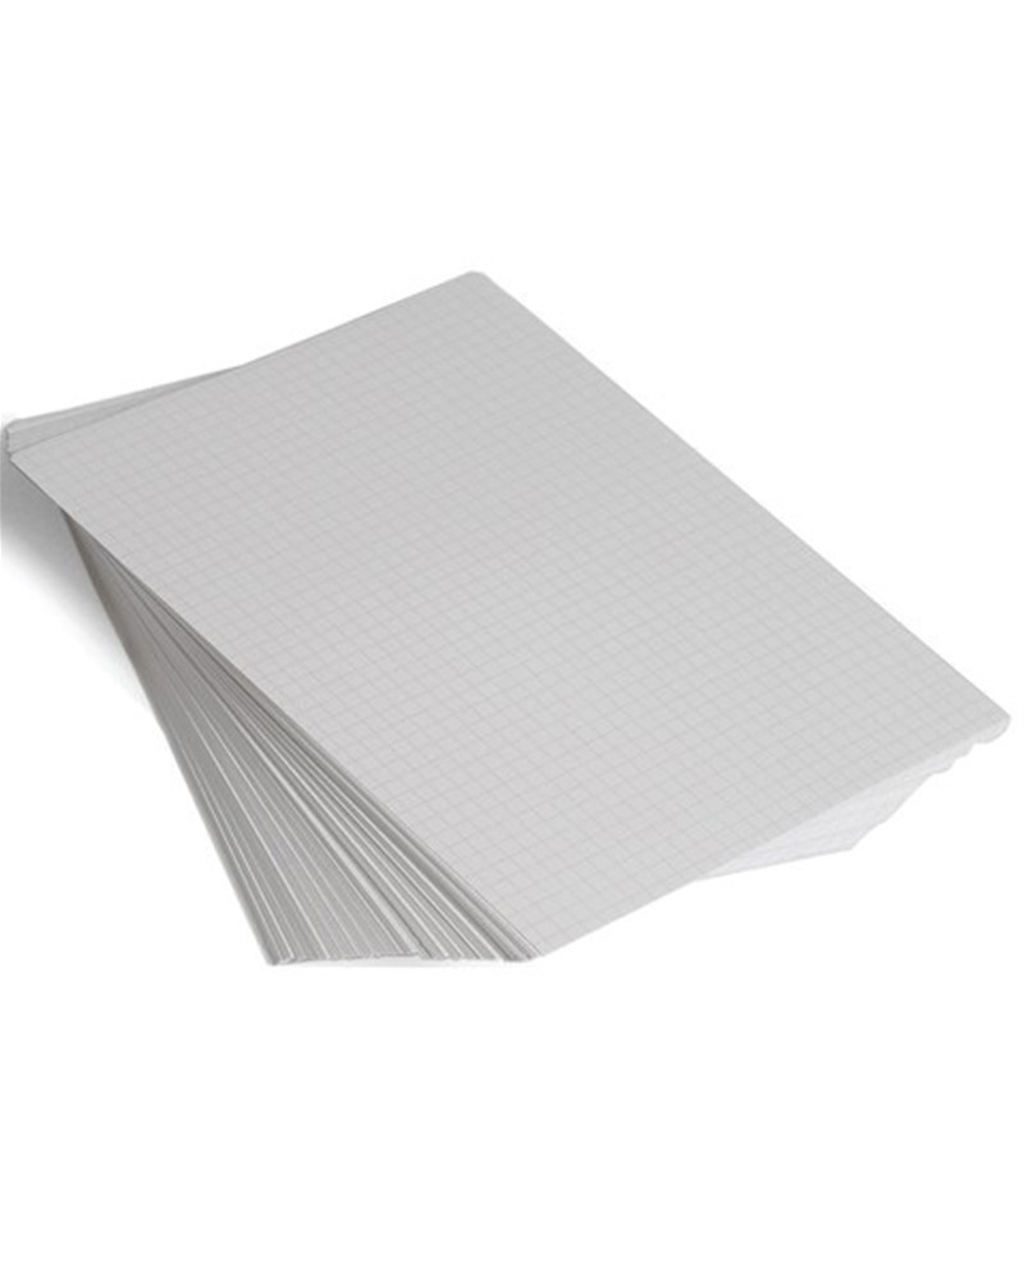 A4 Exercise Paper Unpunched, 7mm Squares